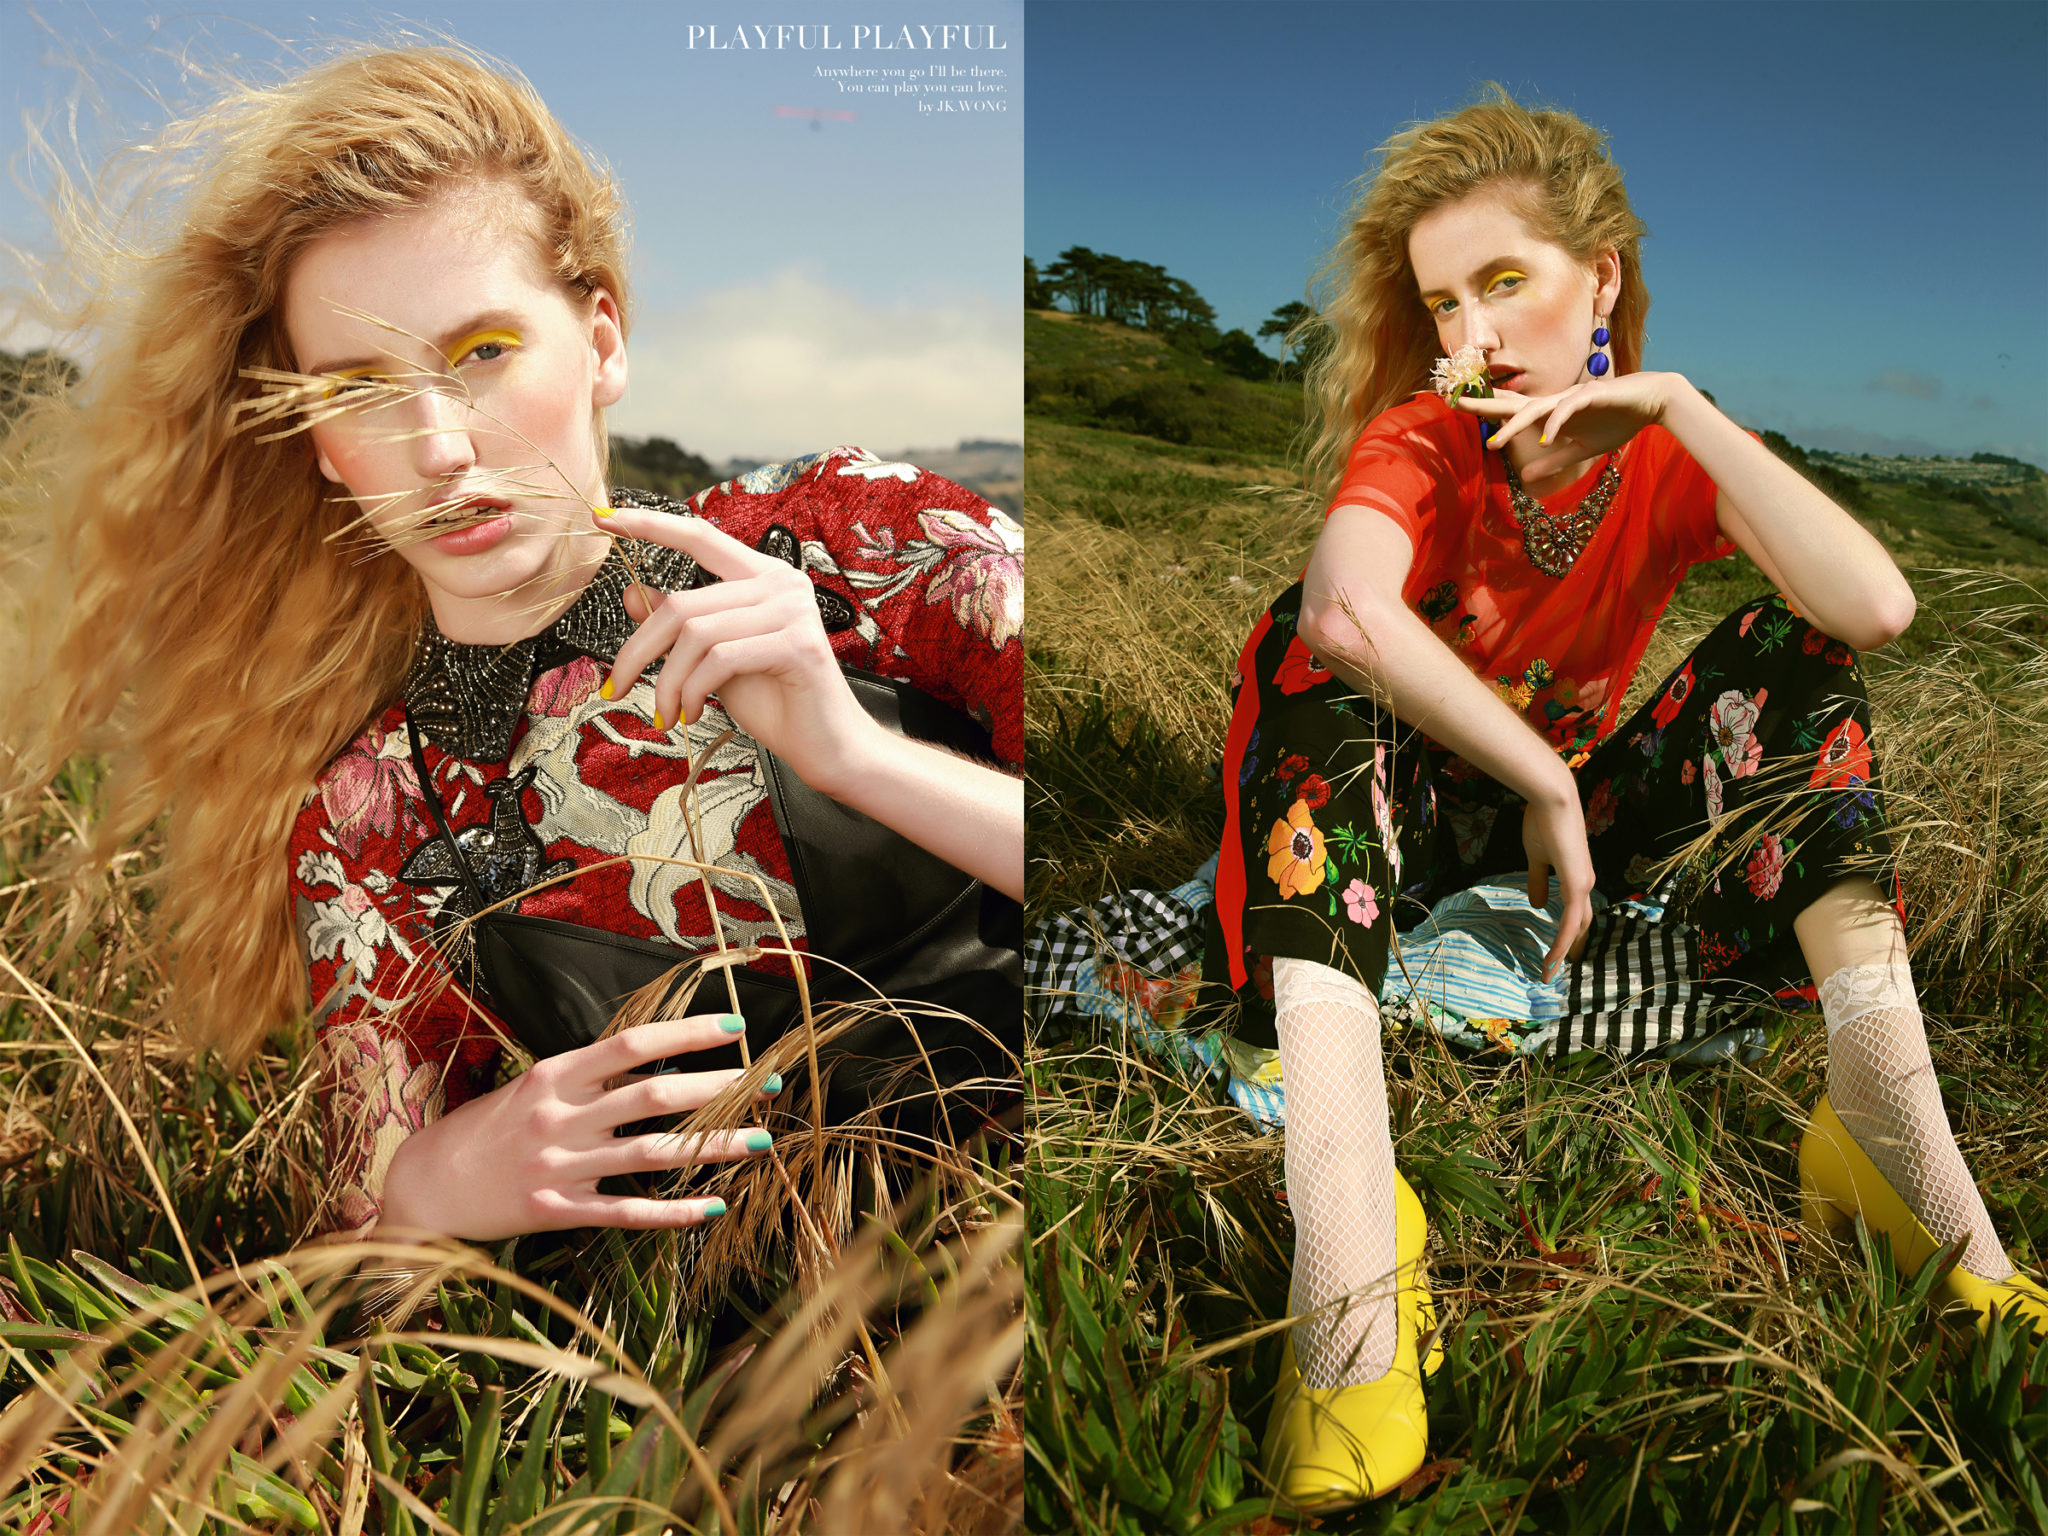 """""""Playful, Playful"""" by JK Wong featured in Vogue Italia"""